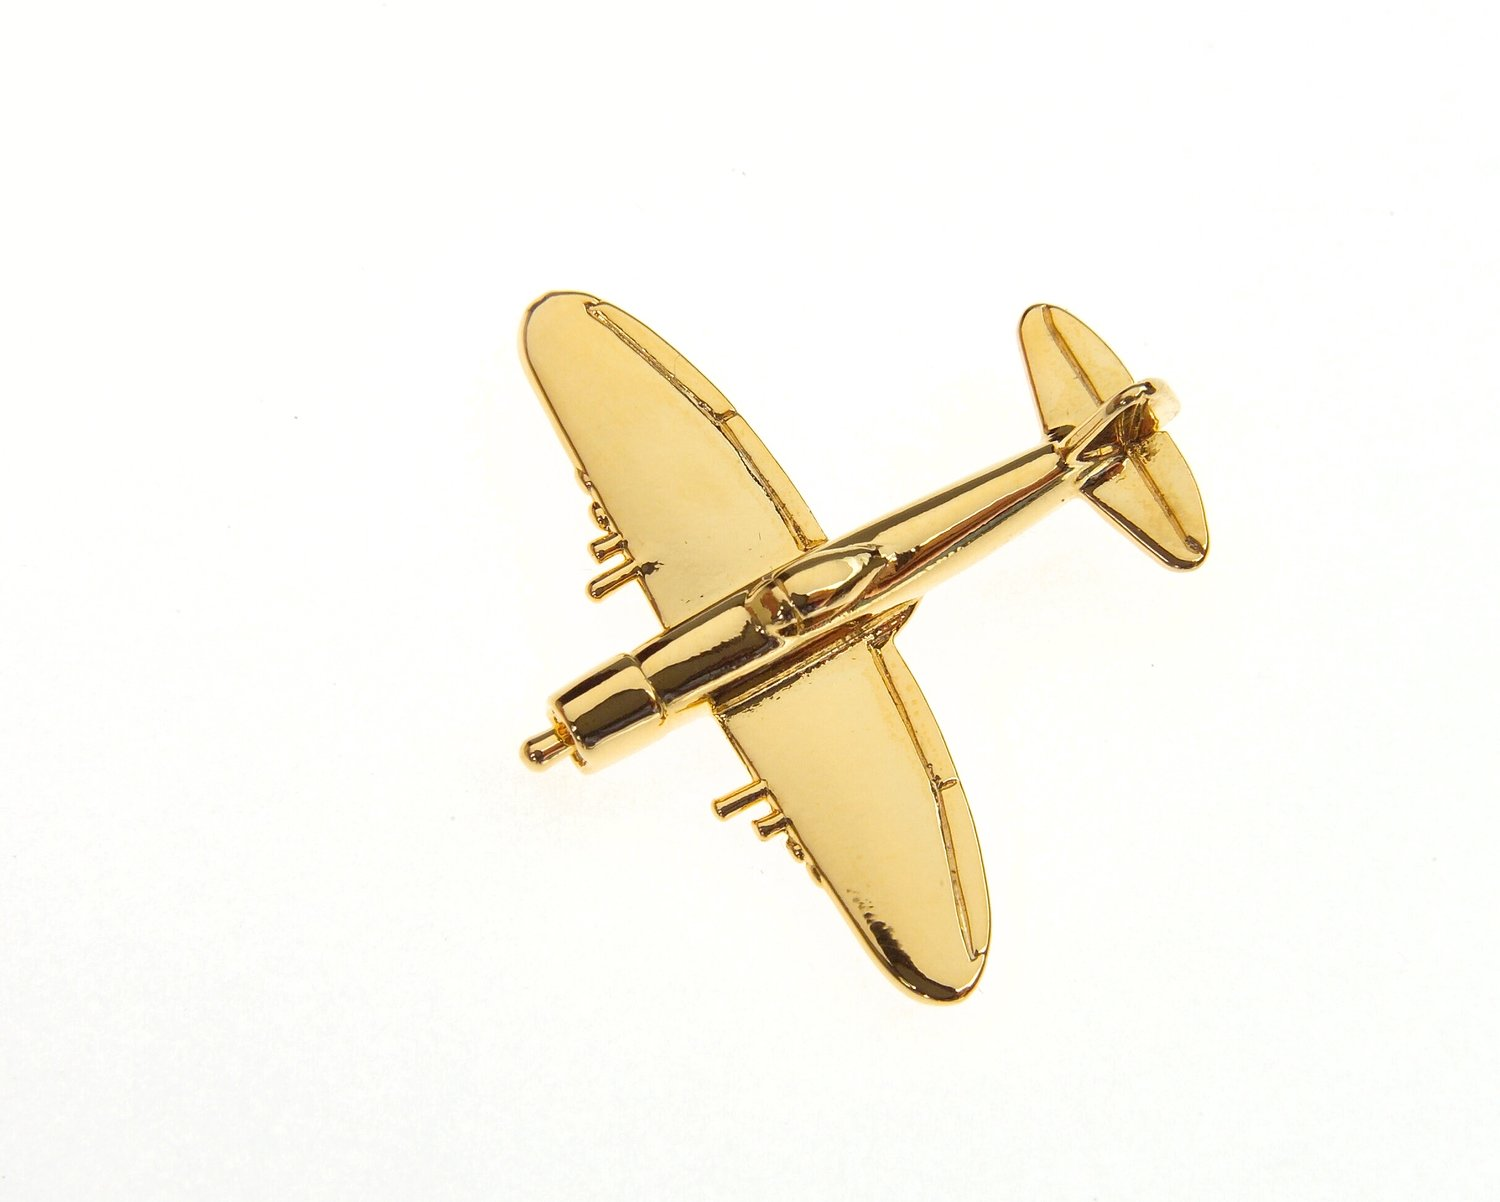 P47 Thunderbolt Gold Plated Tie / Lapel Pin